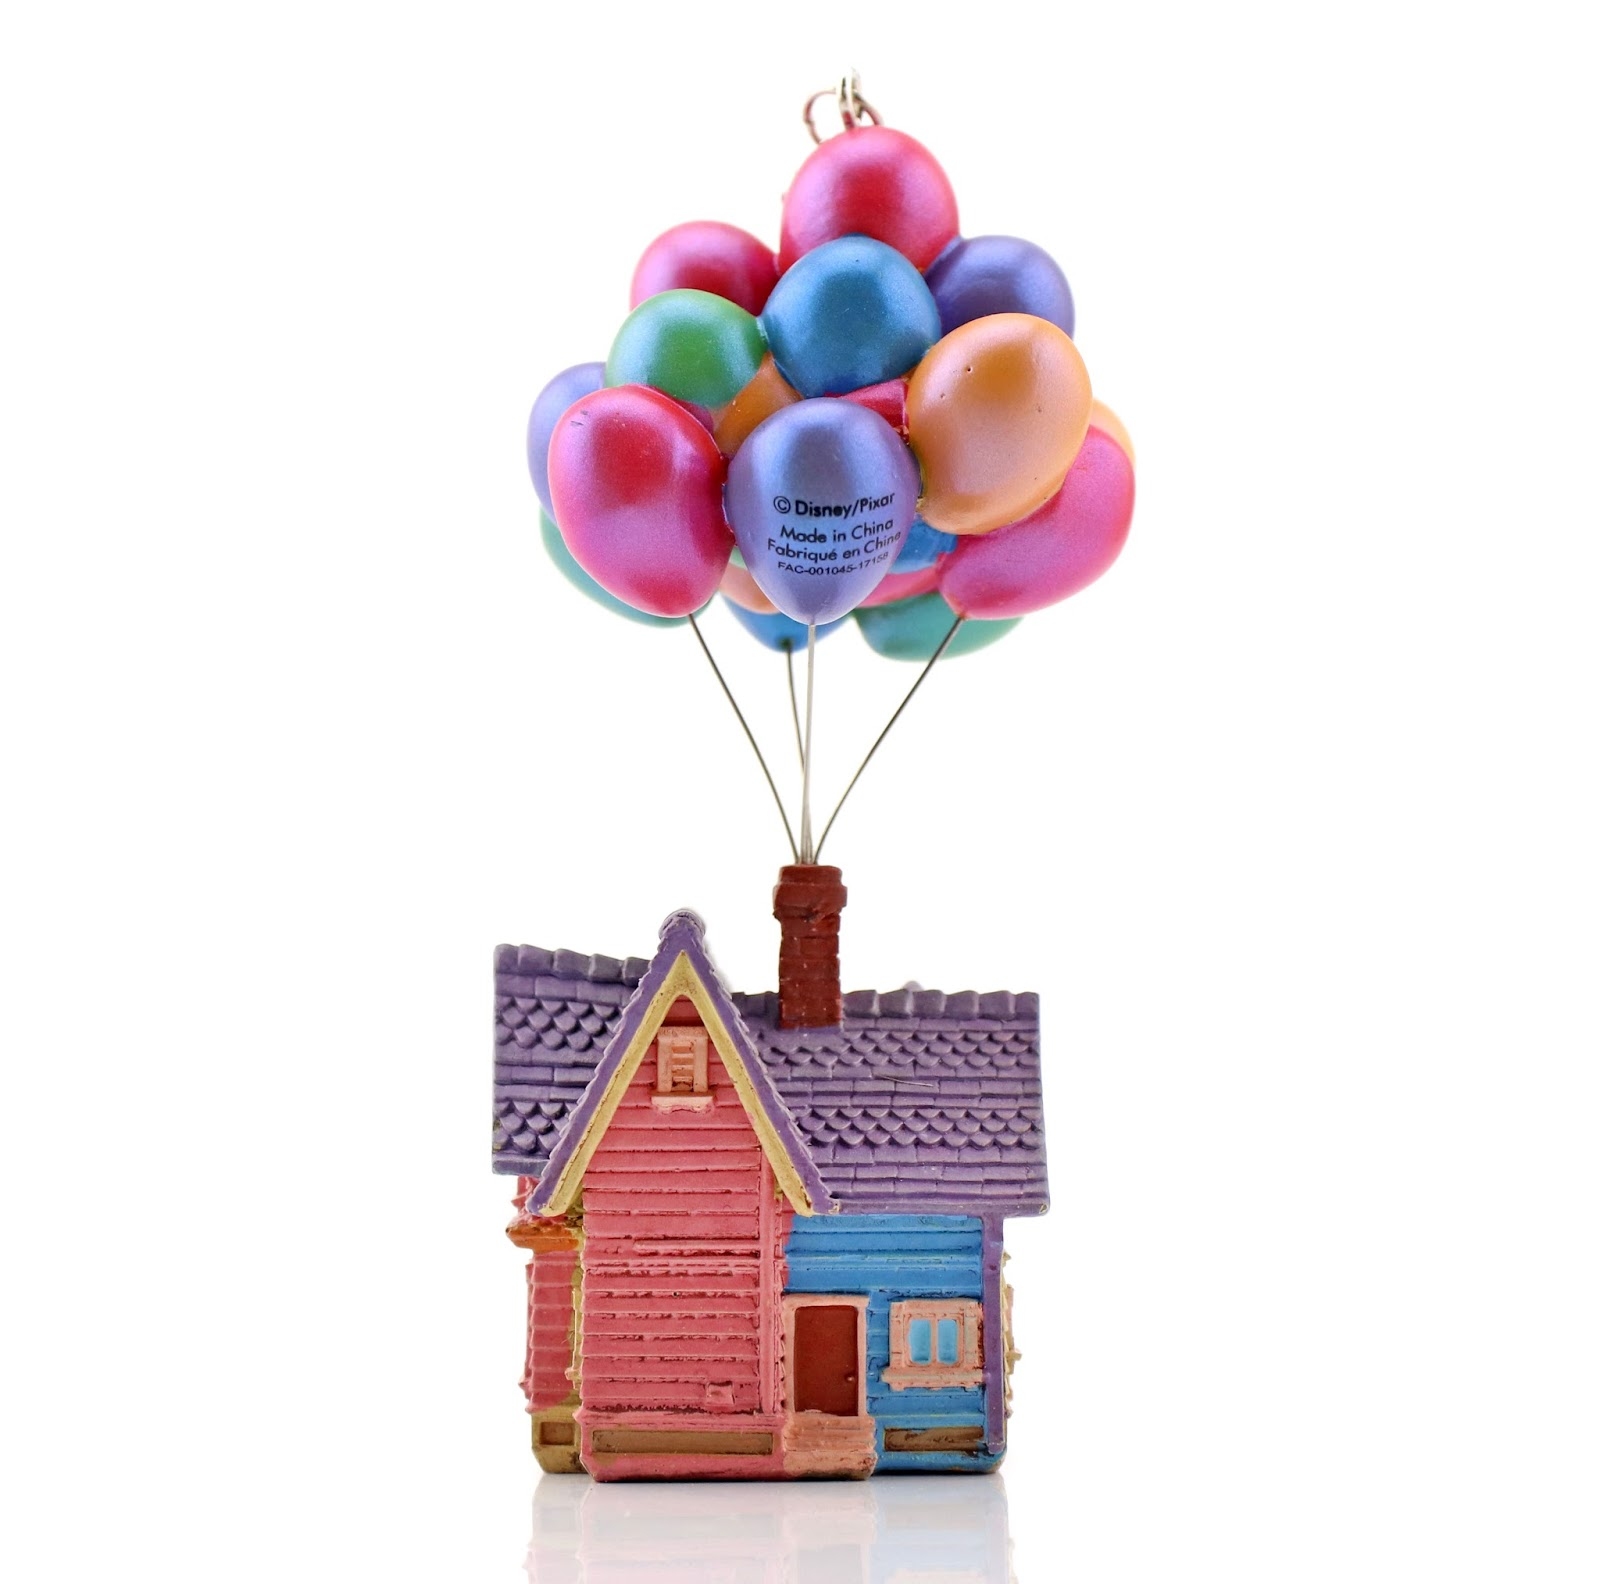 pixar up house disney store sketchbook ornament